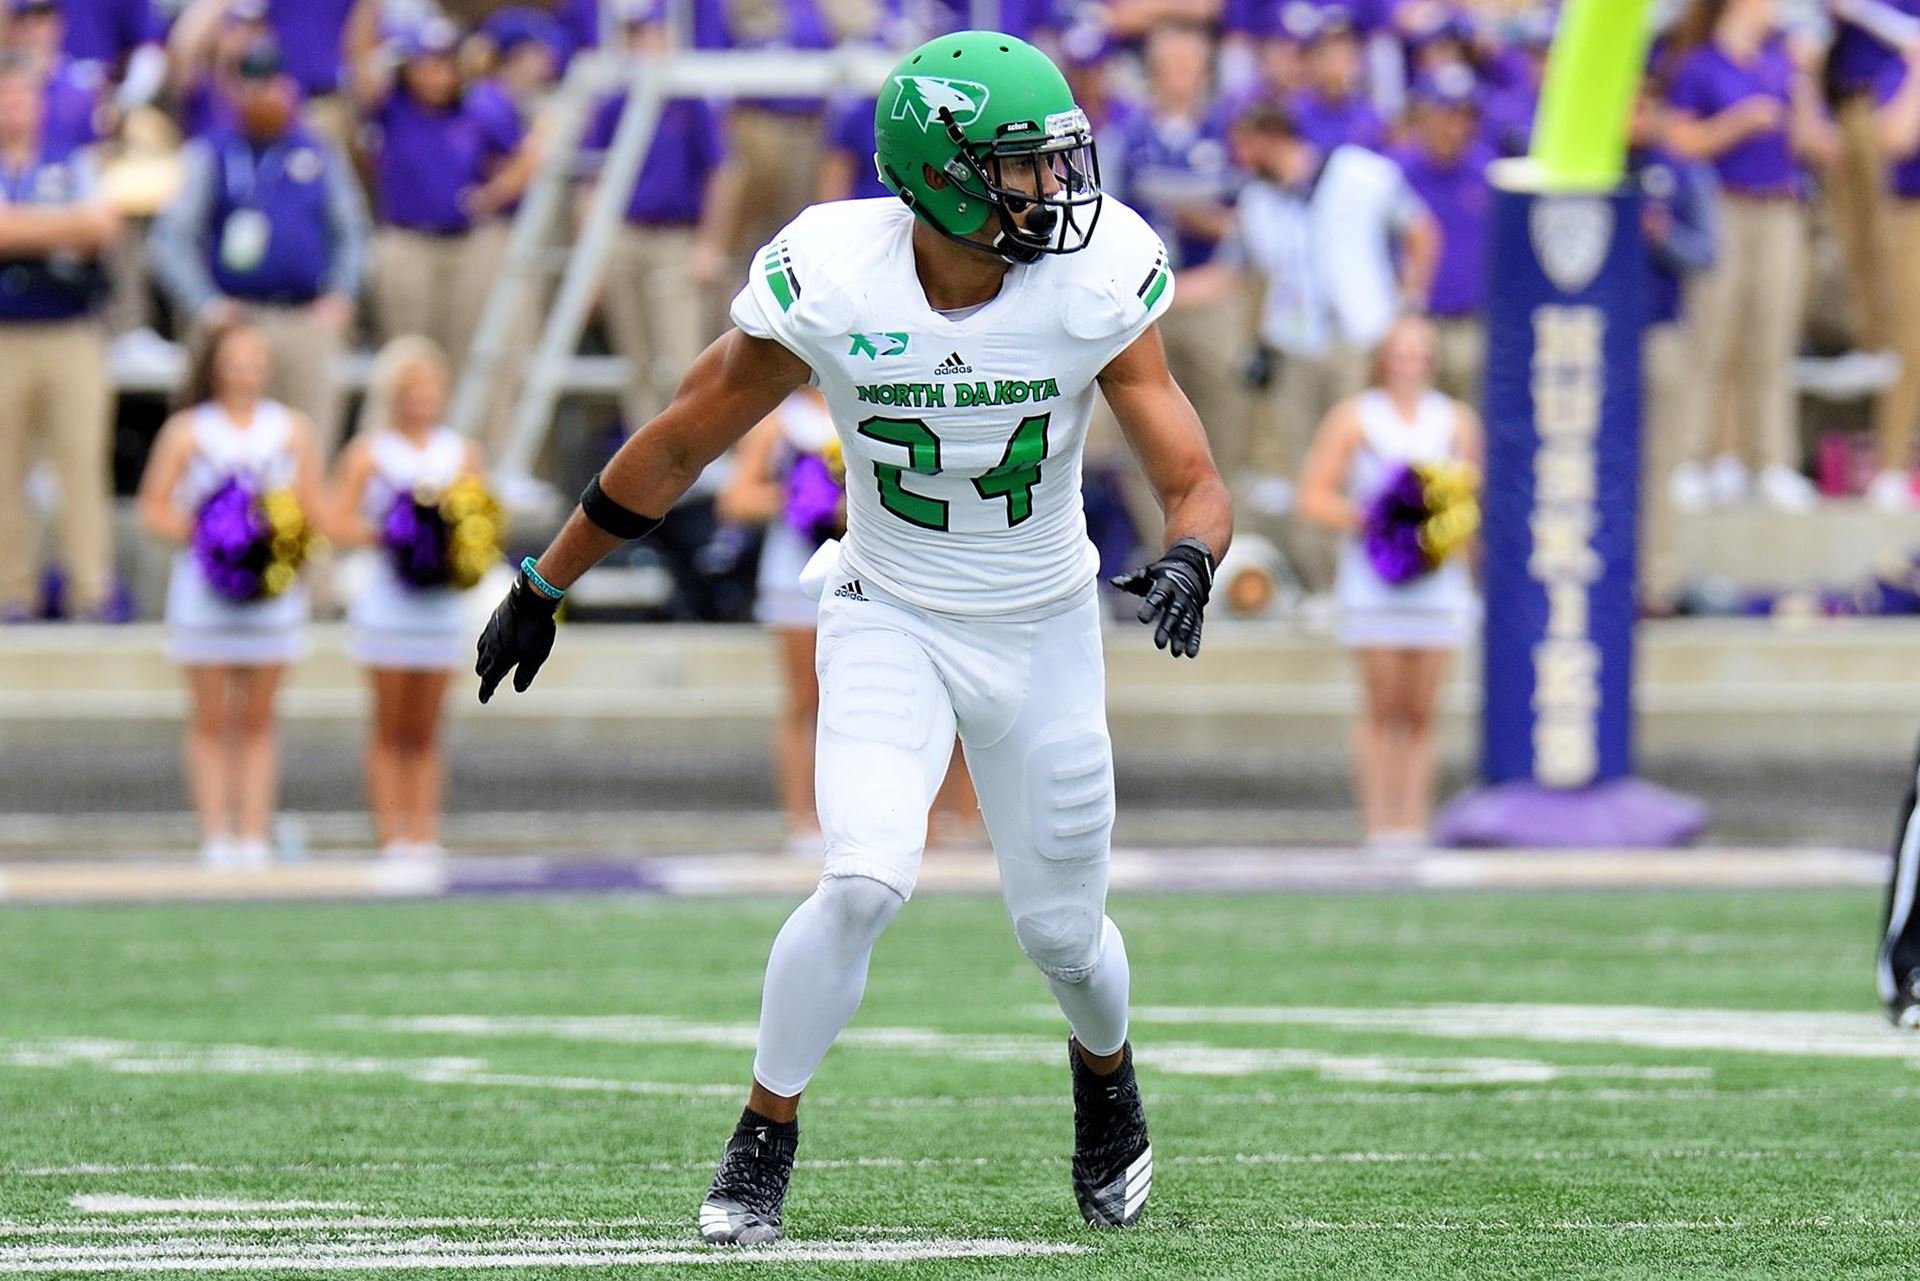 North Dakota Will Again Play Big Sky Opponents While Waiting To Join Missouri Valley In 2020